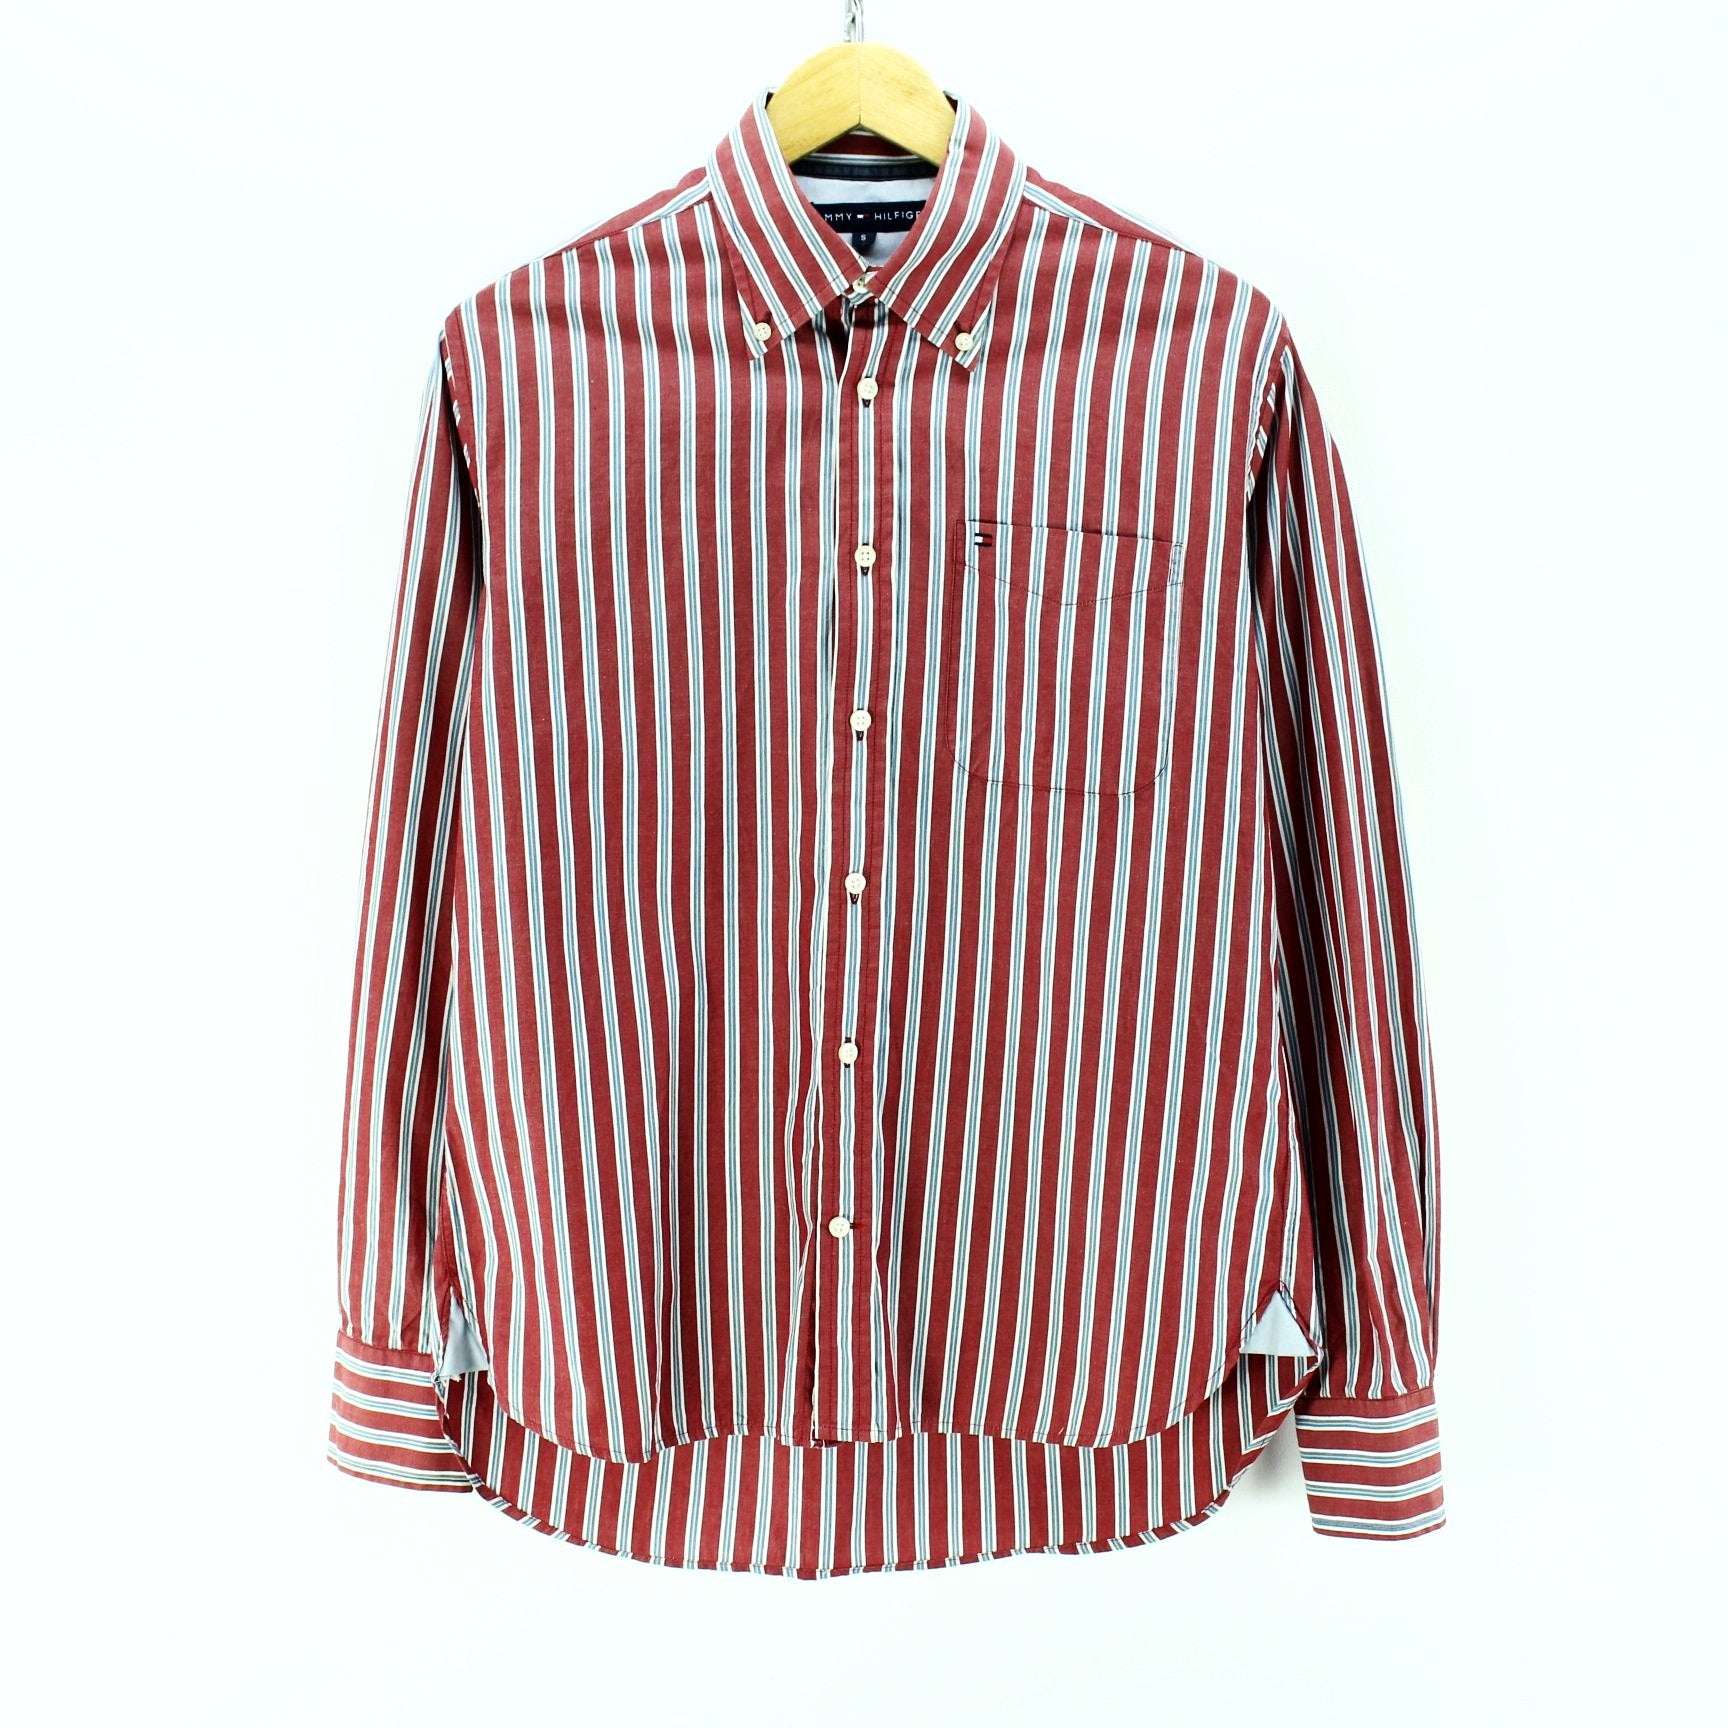 1bc0675c Mens Vintage Polo Shirts, Branded Coats and Jackets In UK, Ireland ...